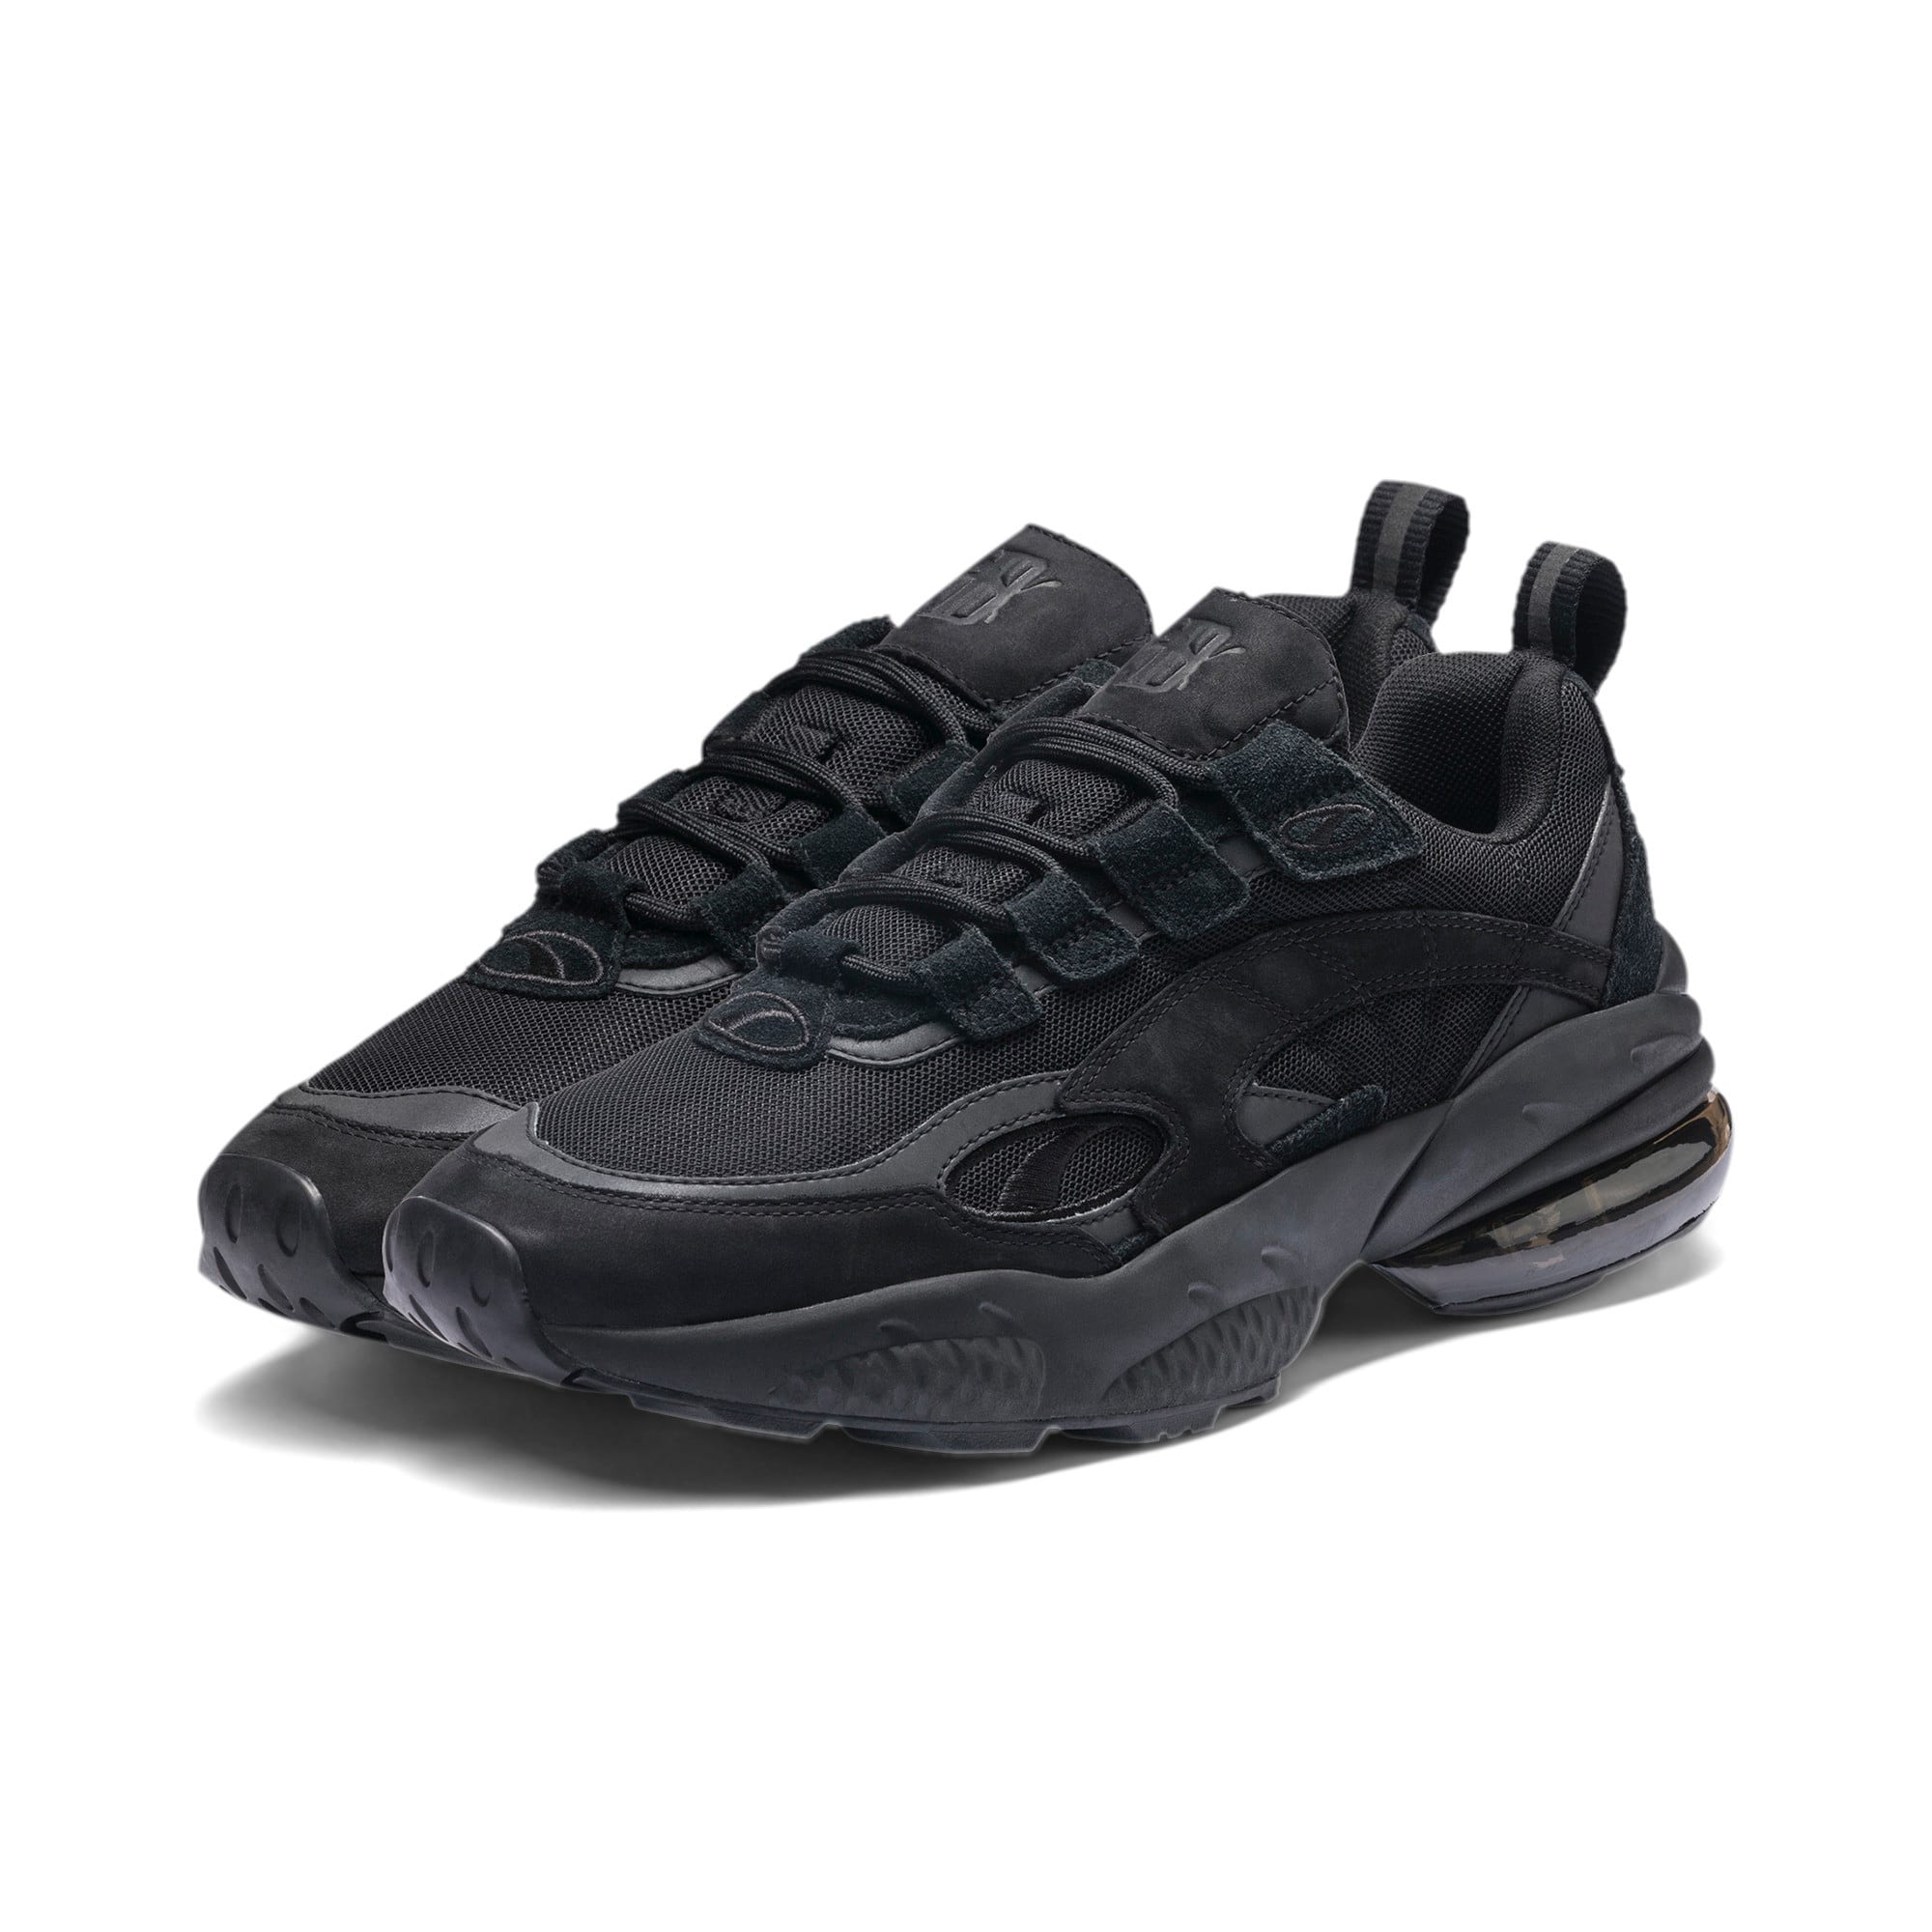 Thumbnail 2 of Scarpe da ginnastica CELL Venom Blackout, Puma Black-Puma Black, medium